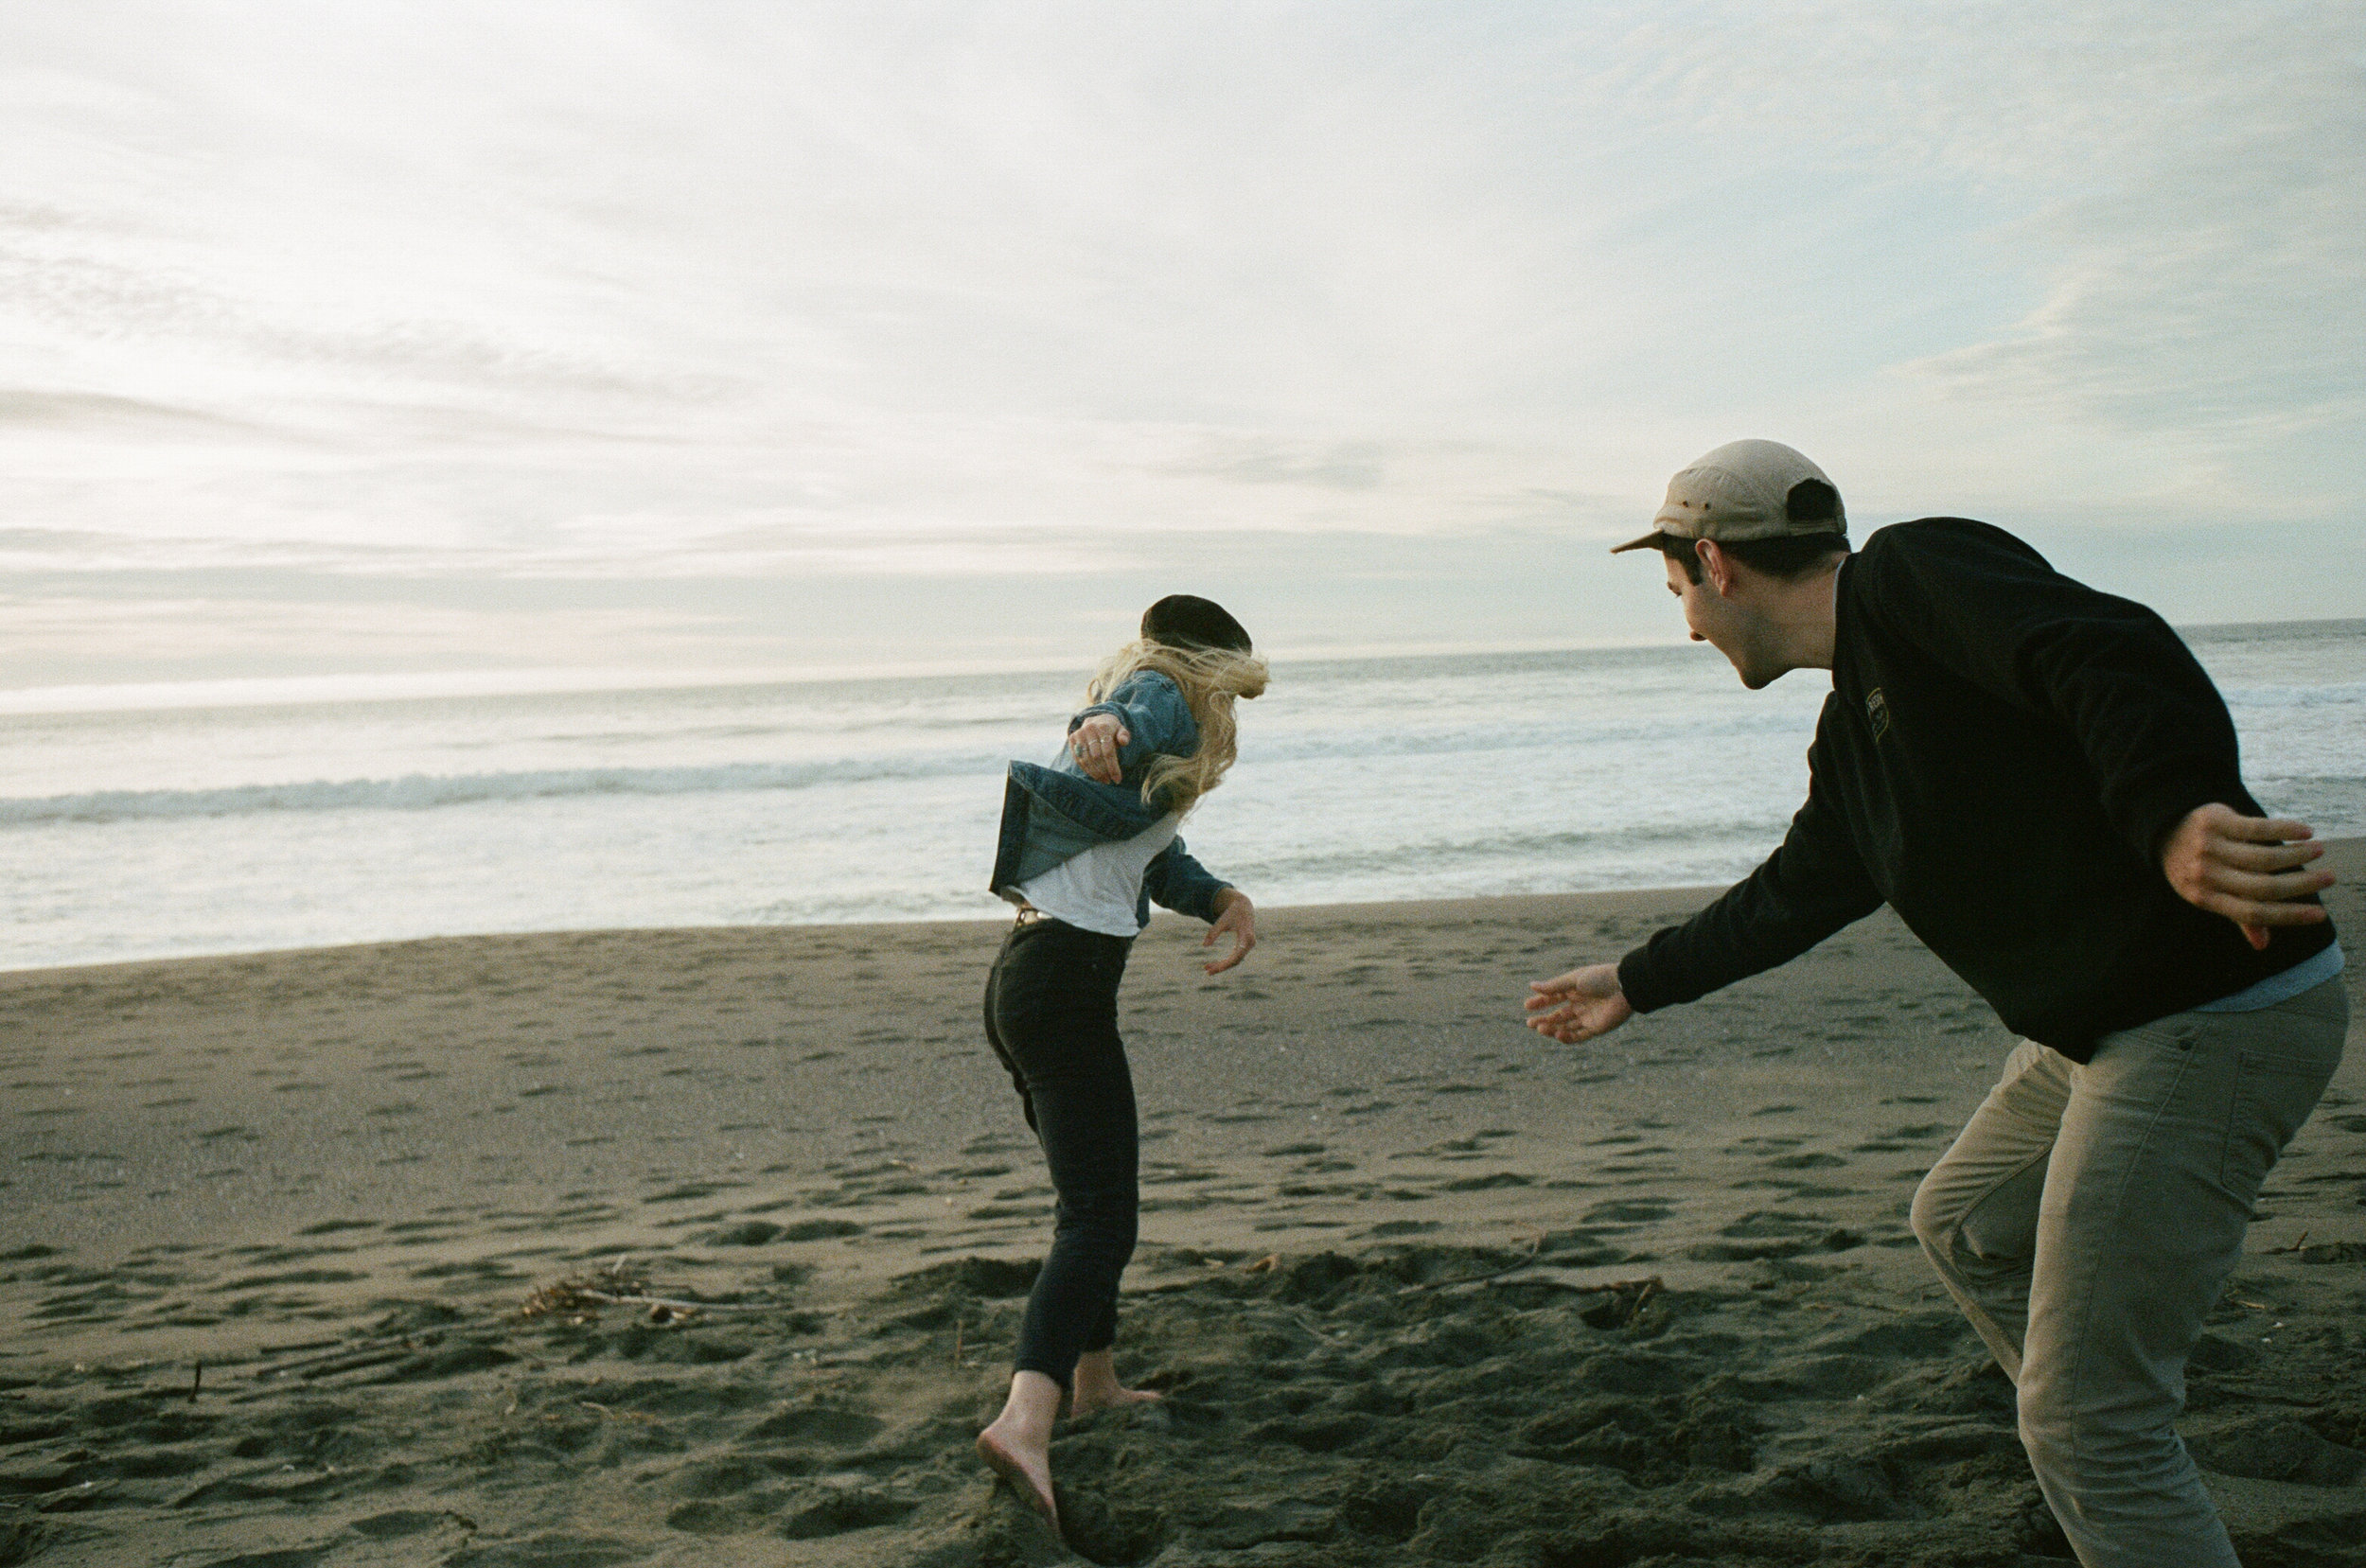 hannah&cole-california-film-jan2019-peytoncurry-000098780002.jpg